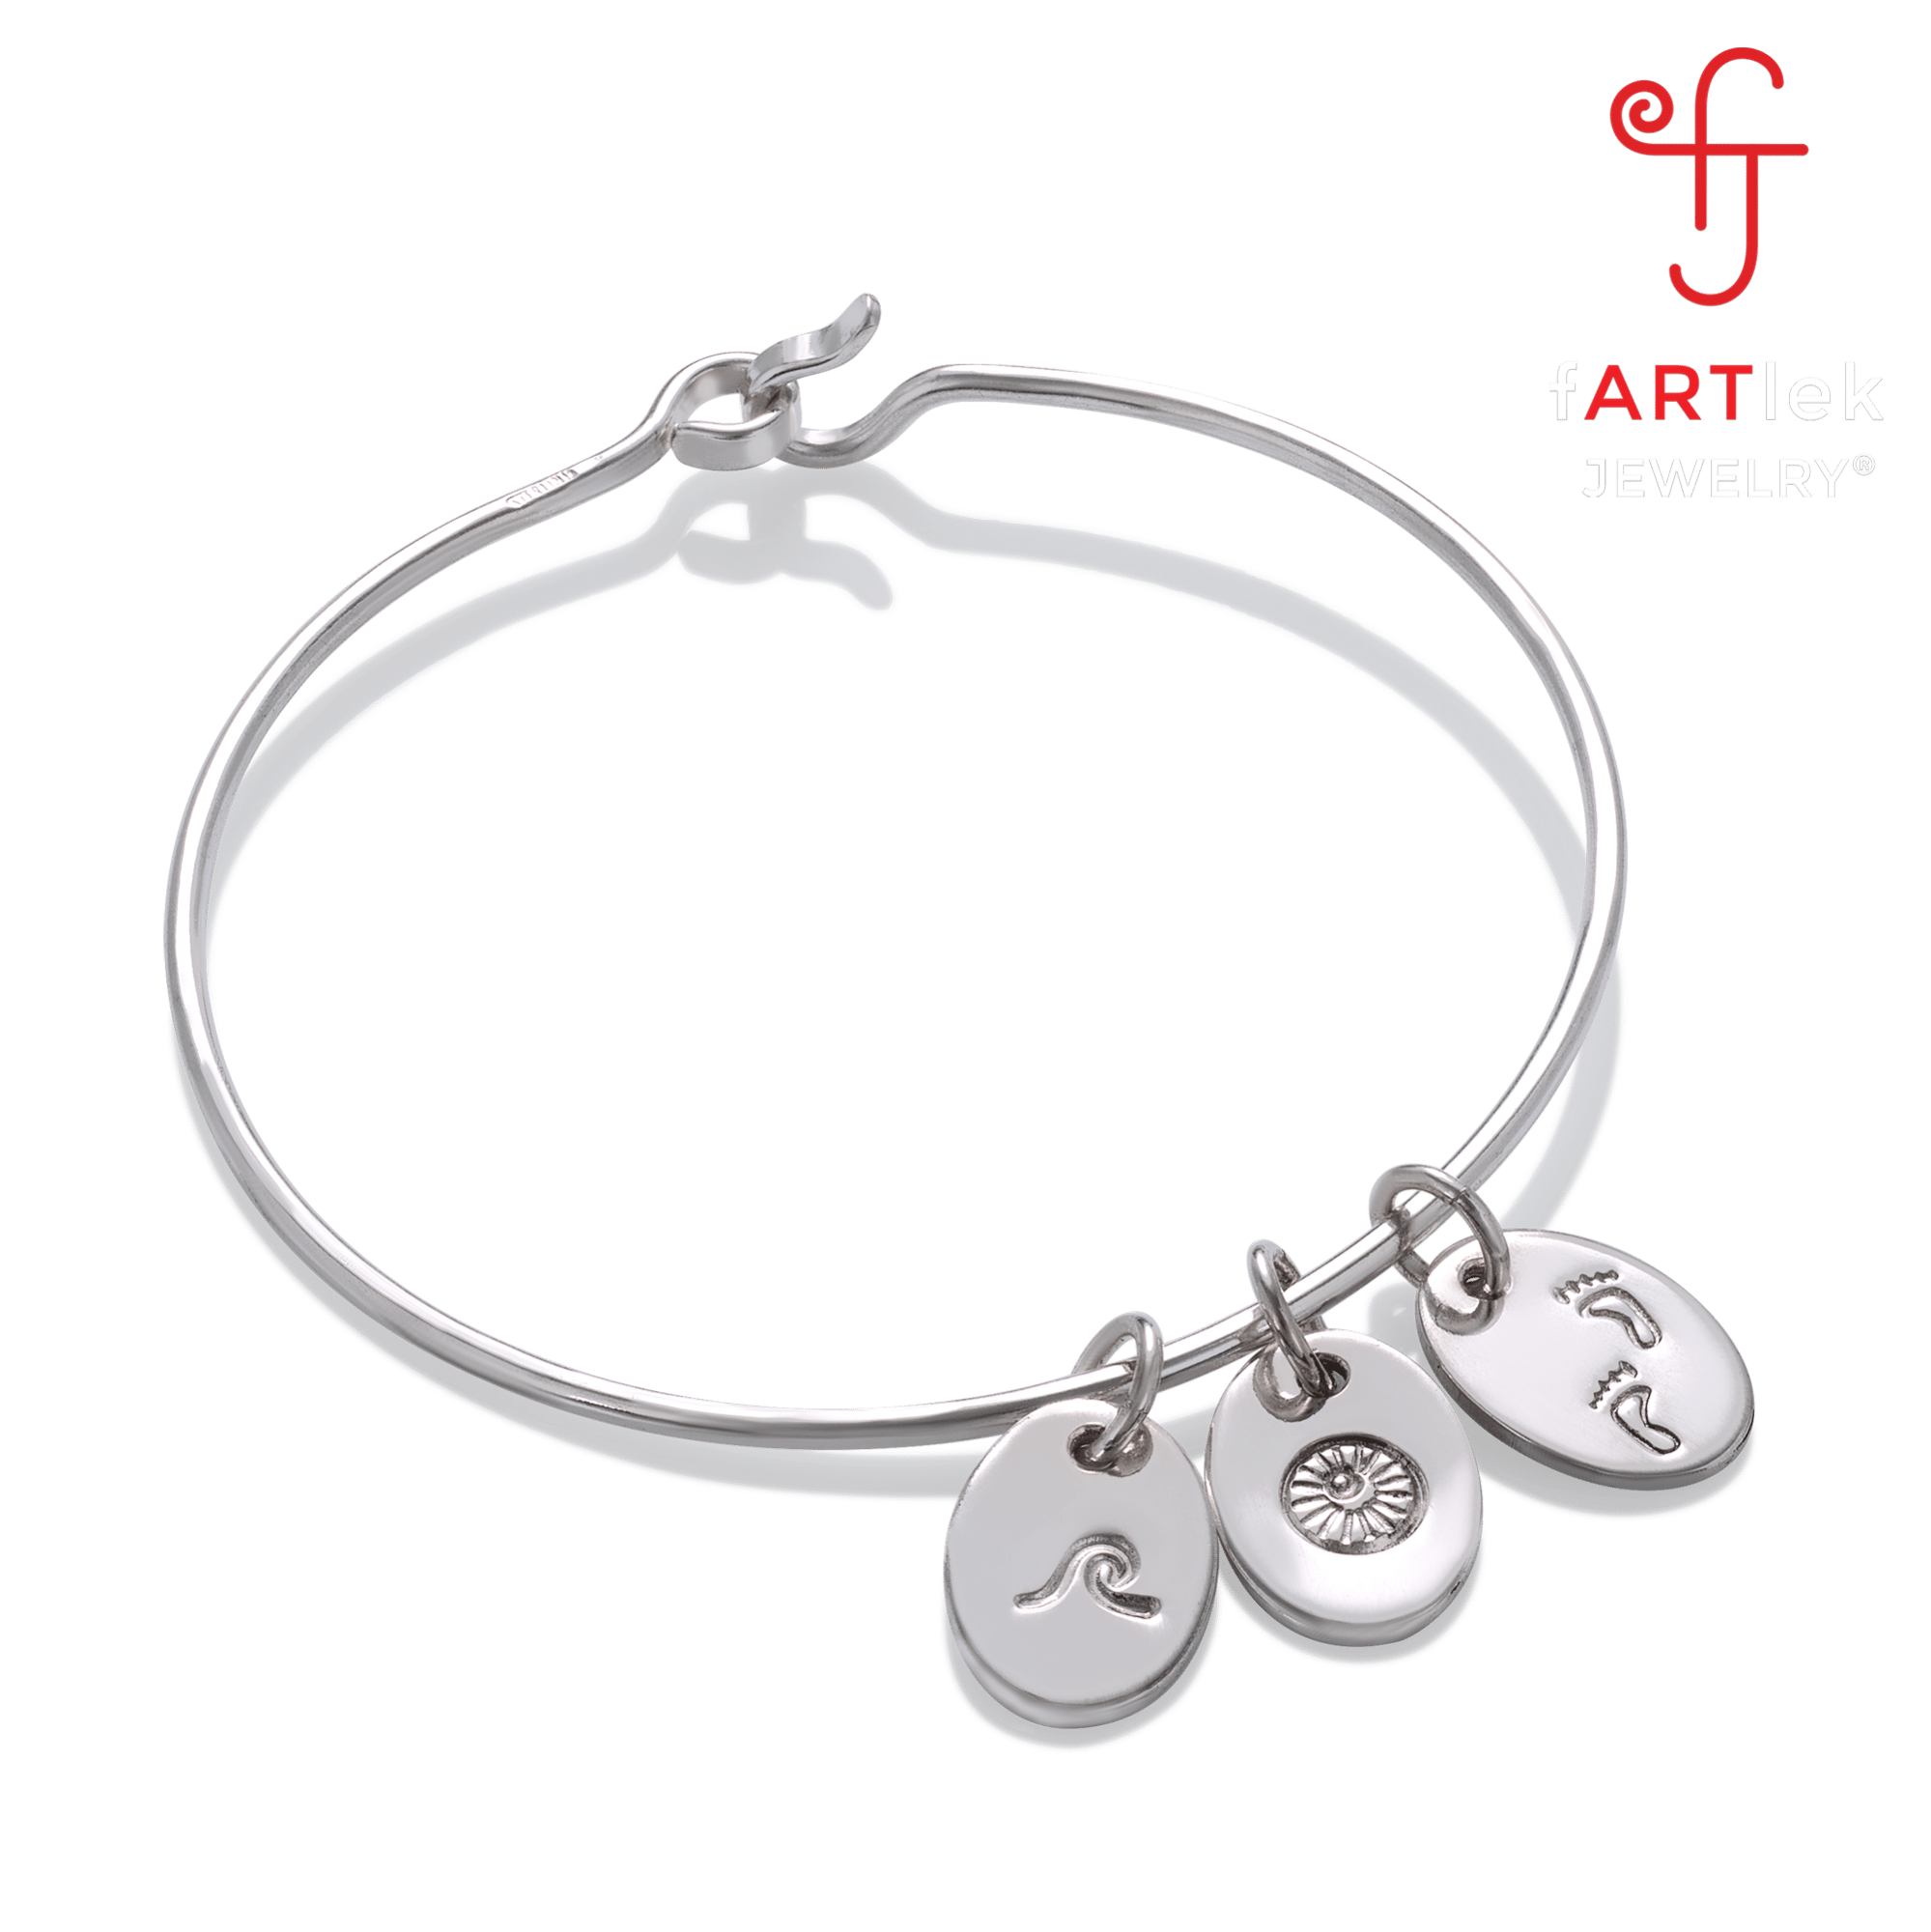 holiday bracelets bracelet rounded amoro italian jewellery small gifts silver bangle collection sterling